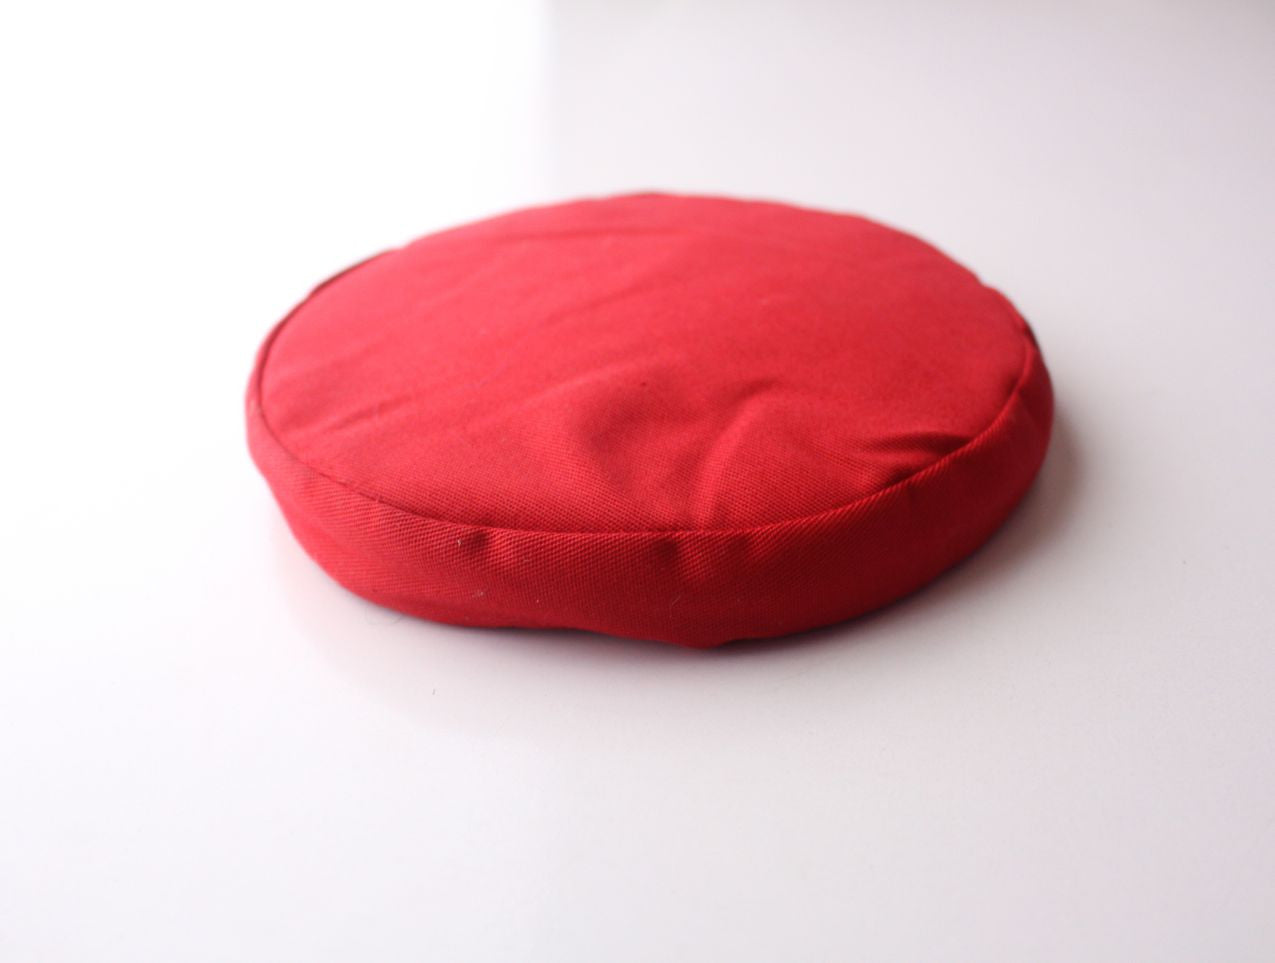 Lightweight Round Red Singing Bowl Cushion - nepacrafts